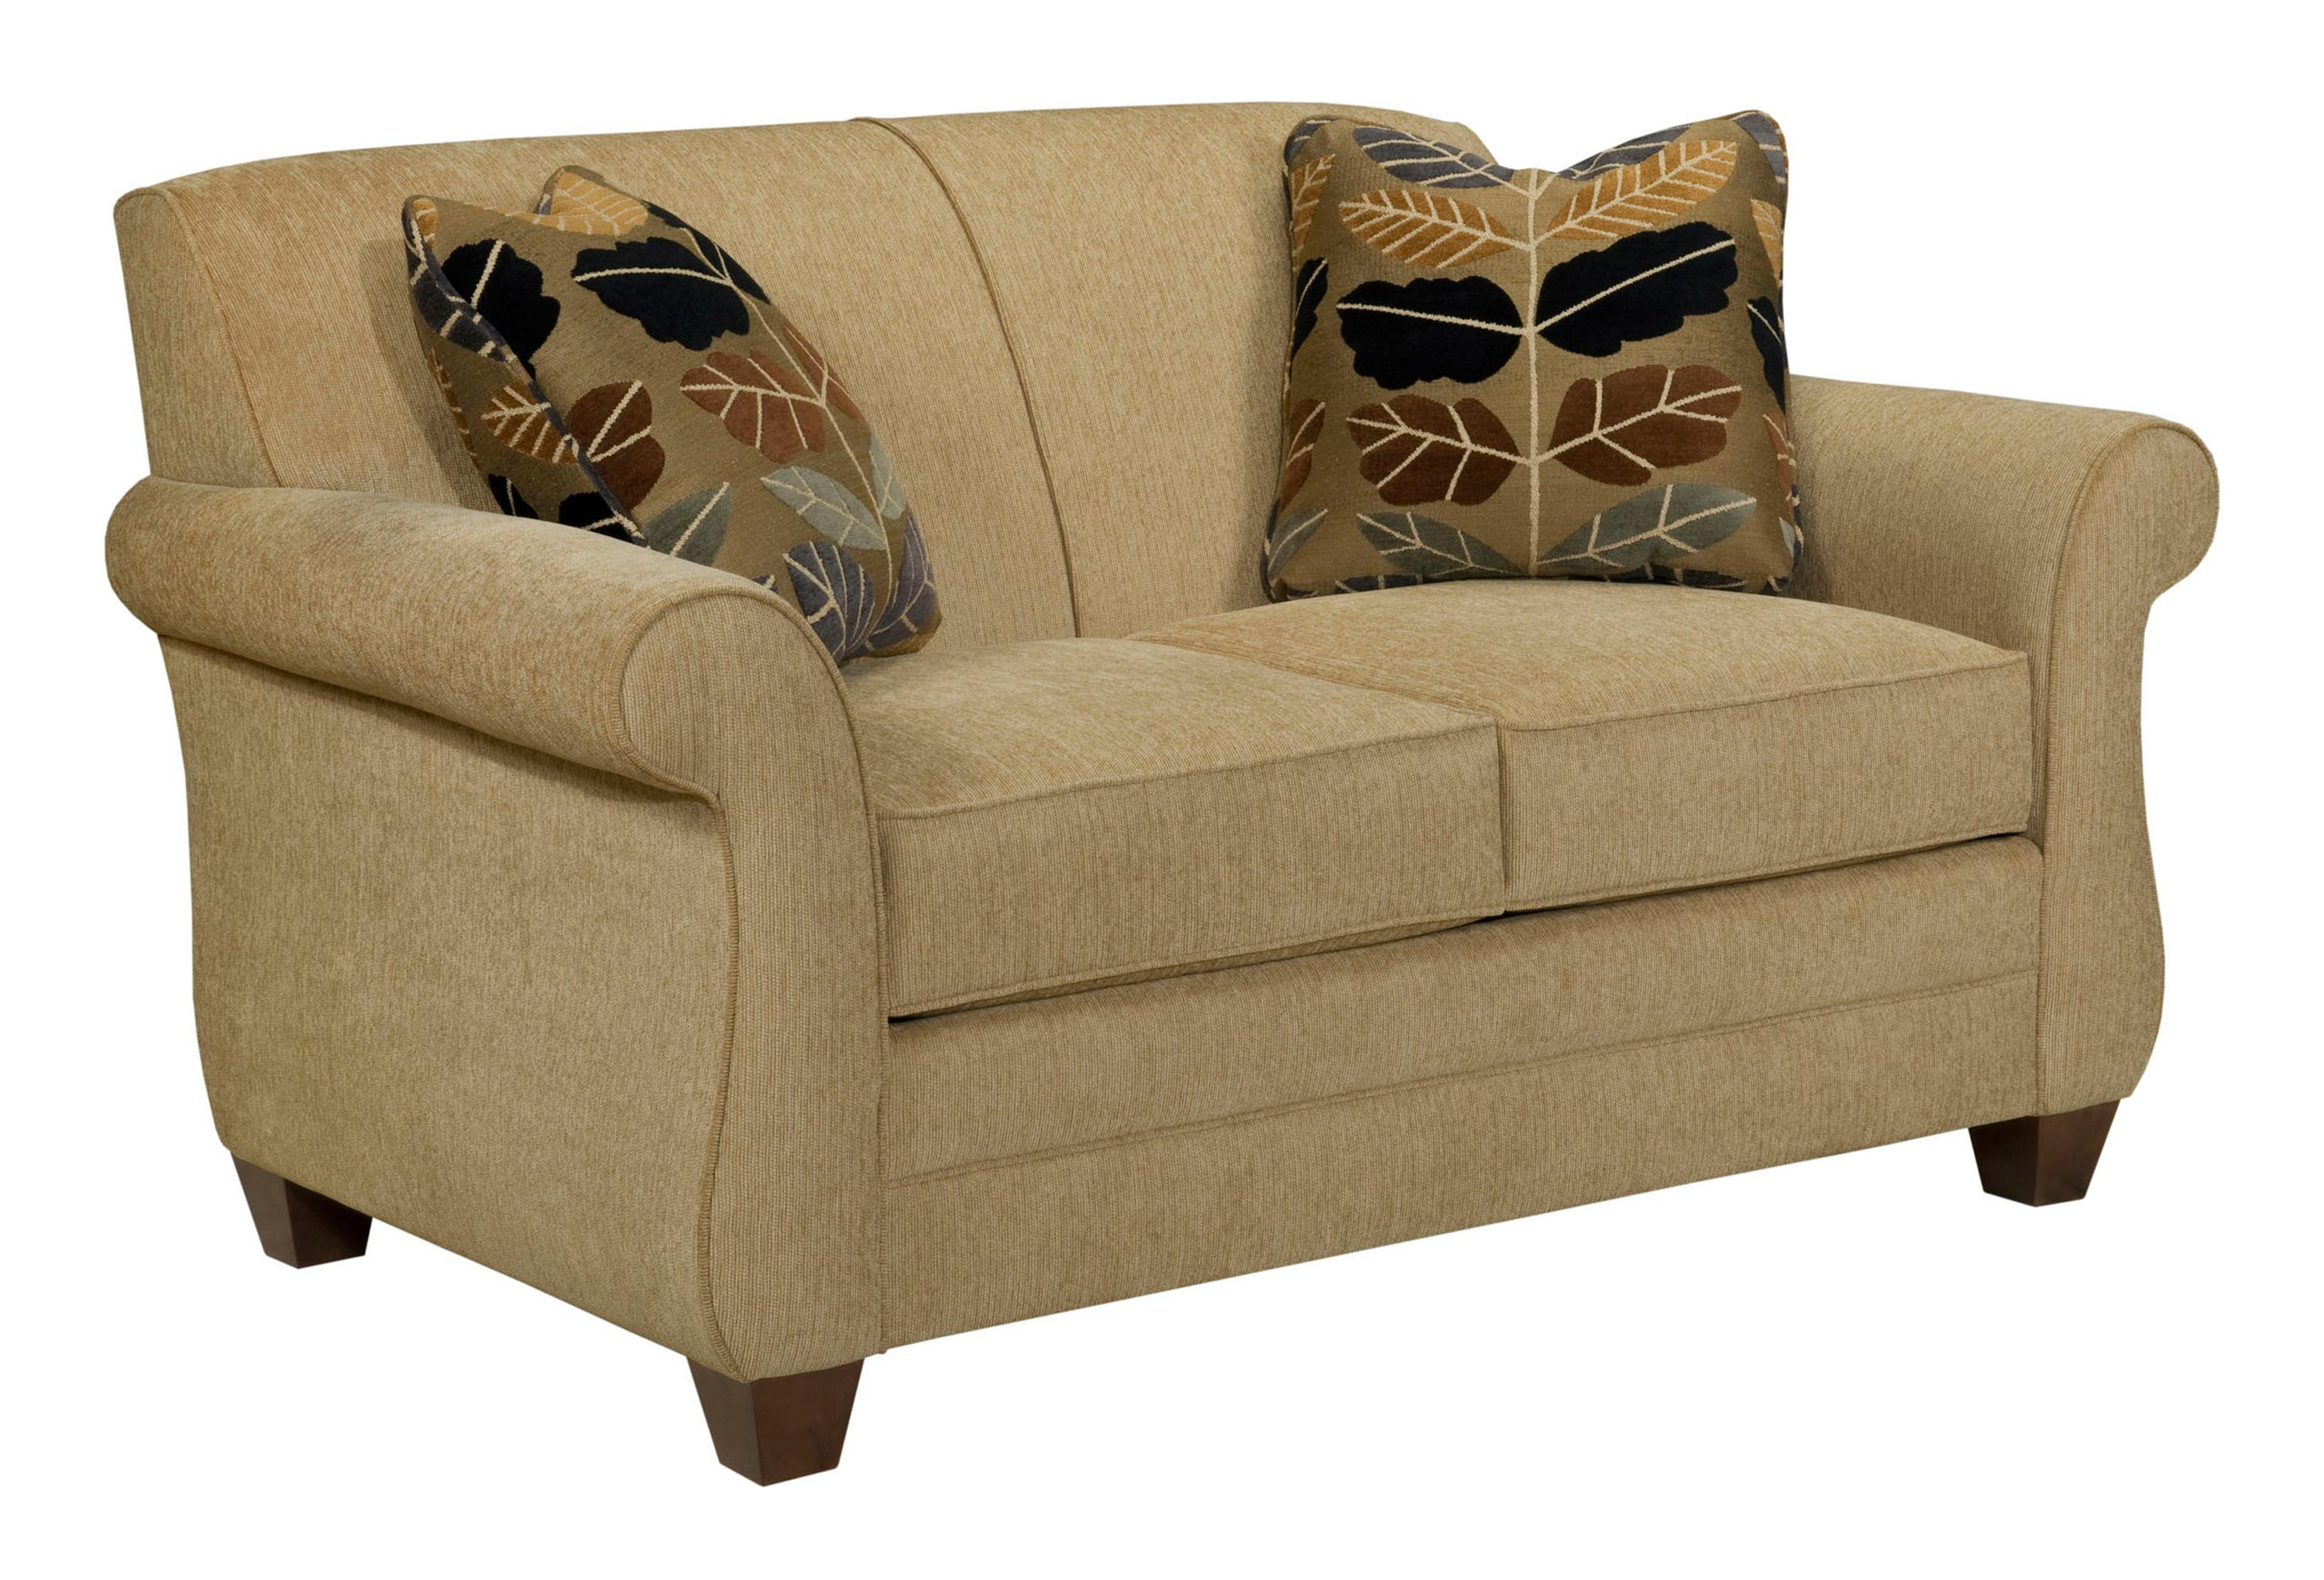 Broyhill Furniture Greenwich Greenwich Loveseat - Item Number: 3676-1